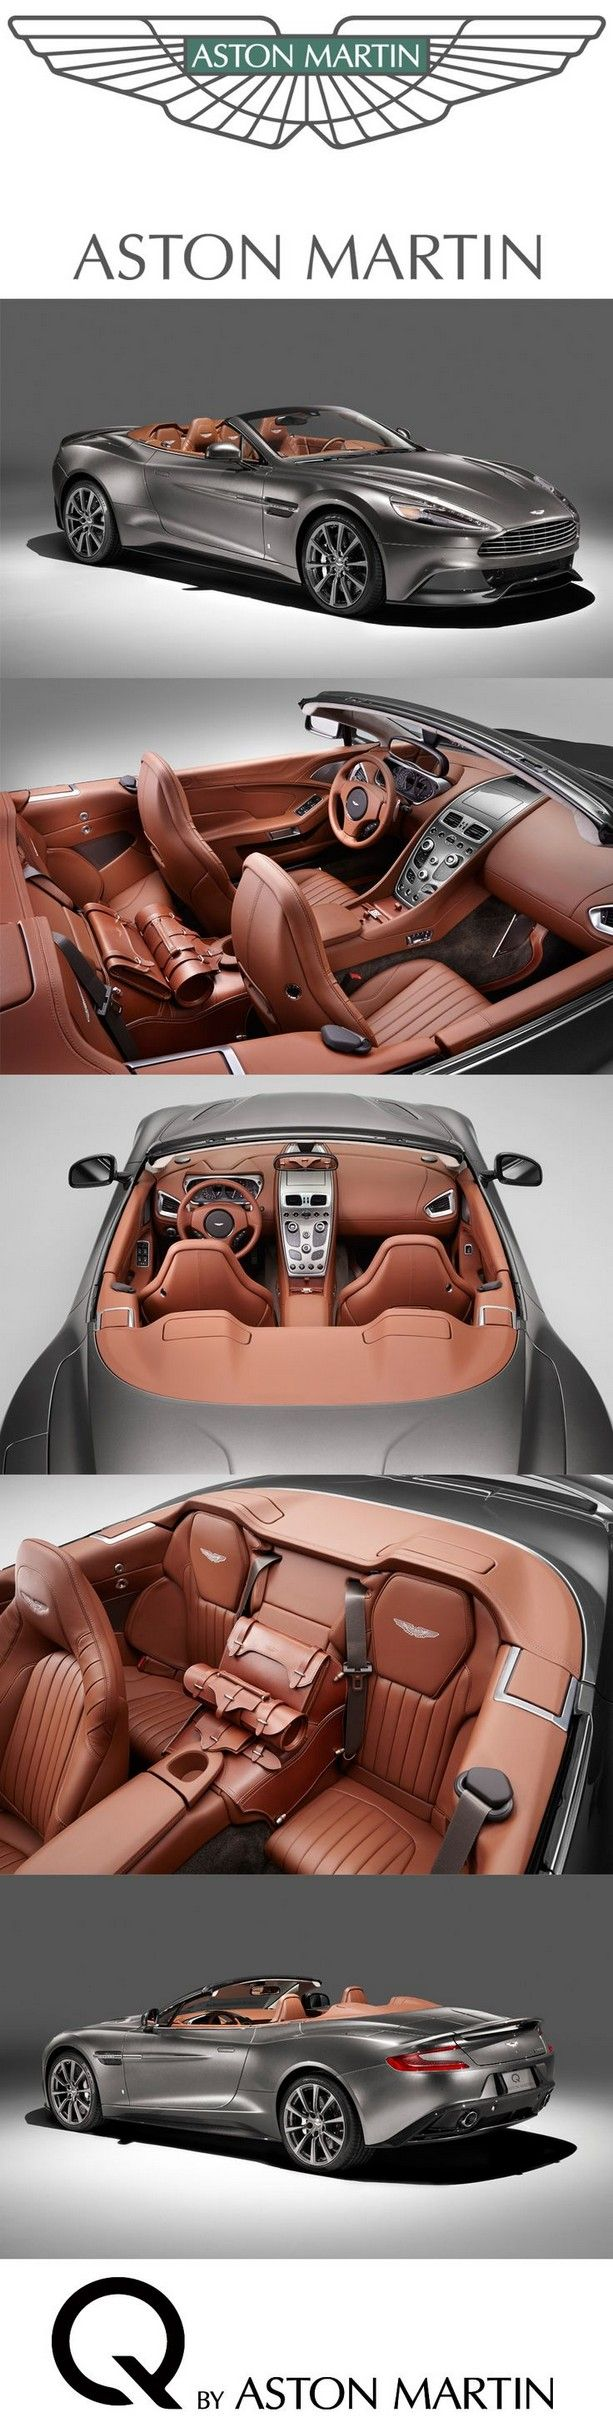 This Vanquish Volante adopts a new Q exterior paint finish – Frosted Silver – which has superior light to dark travel